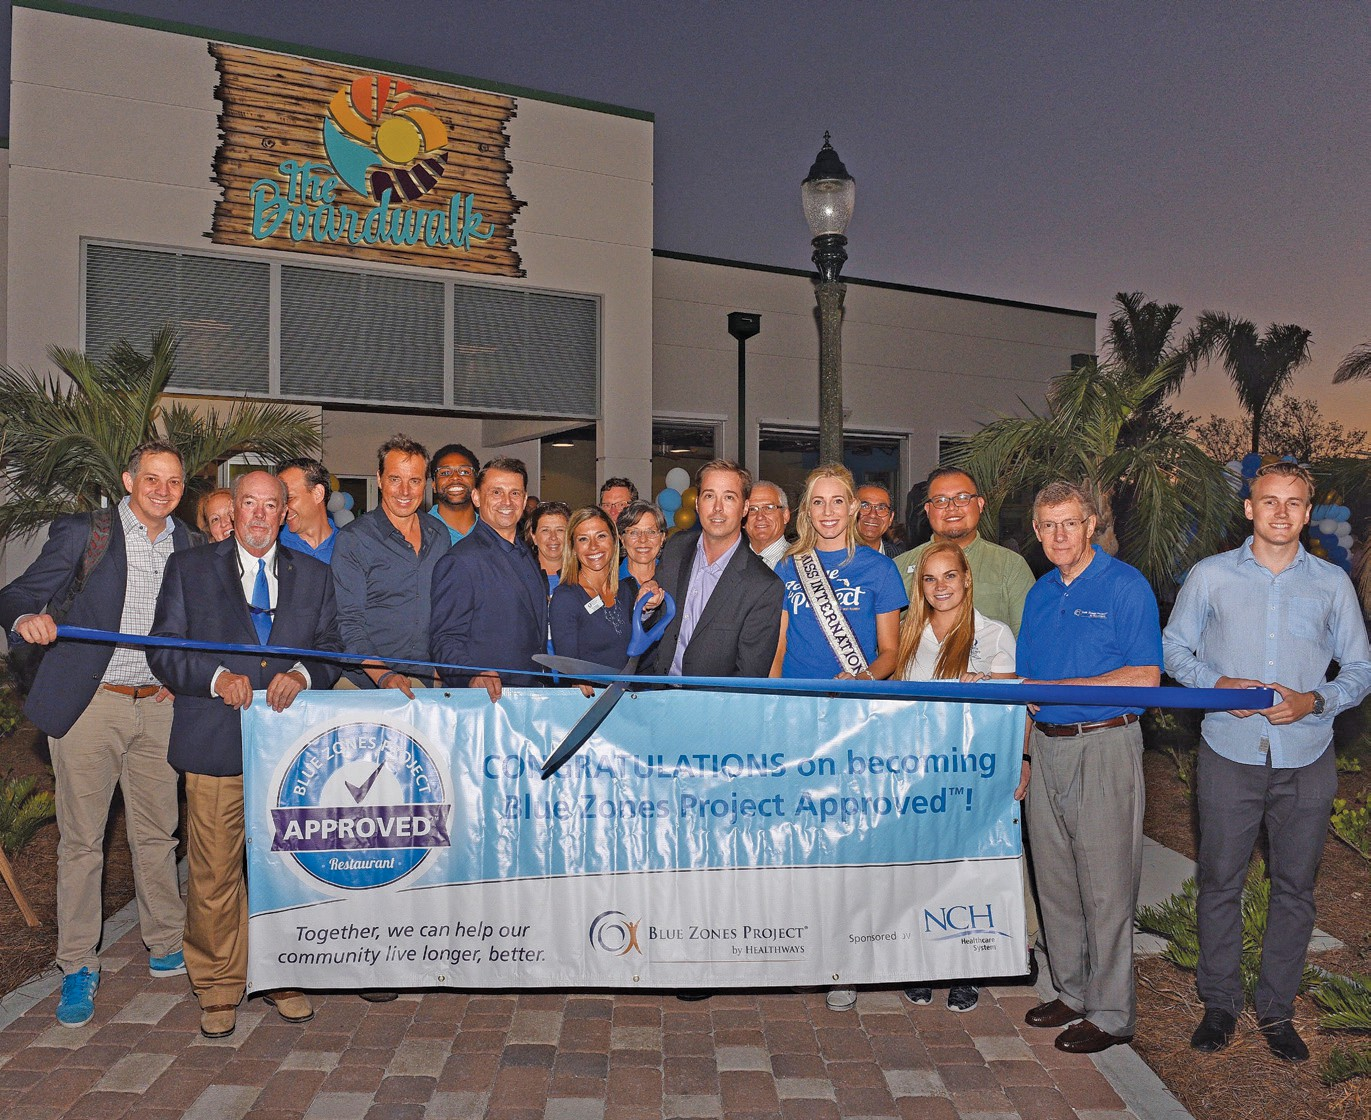 Boardwalk Becomes Second Blue Zones Project Approved